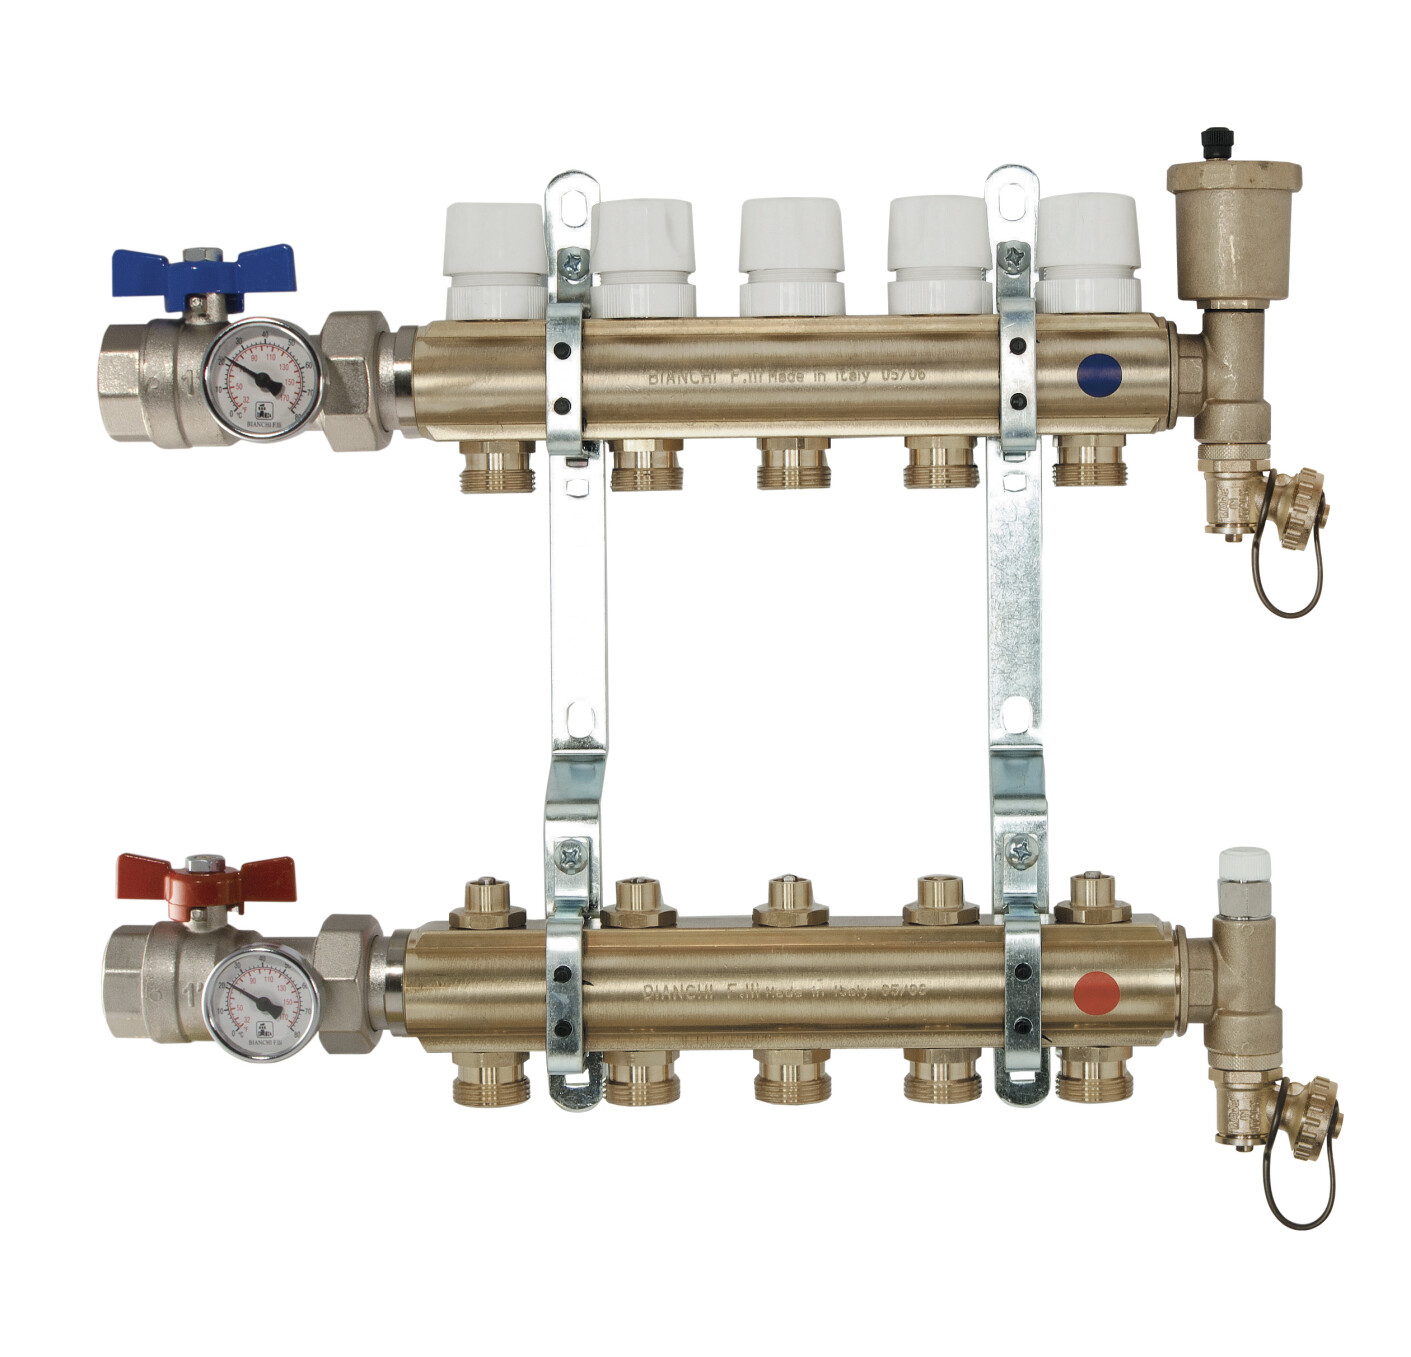 Brass manifolds therm. valves and lockshield, valves, disch.